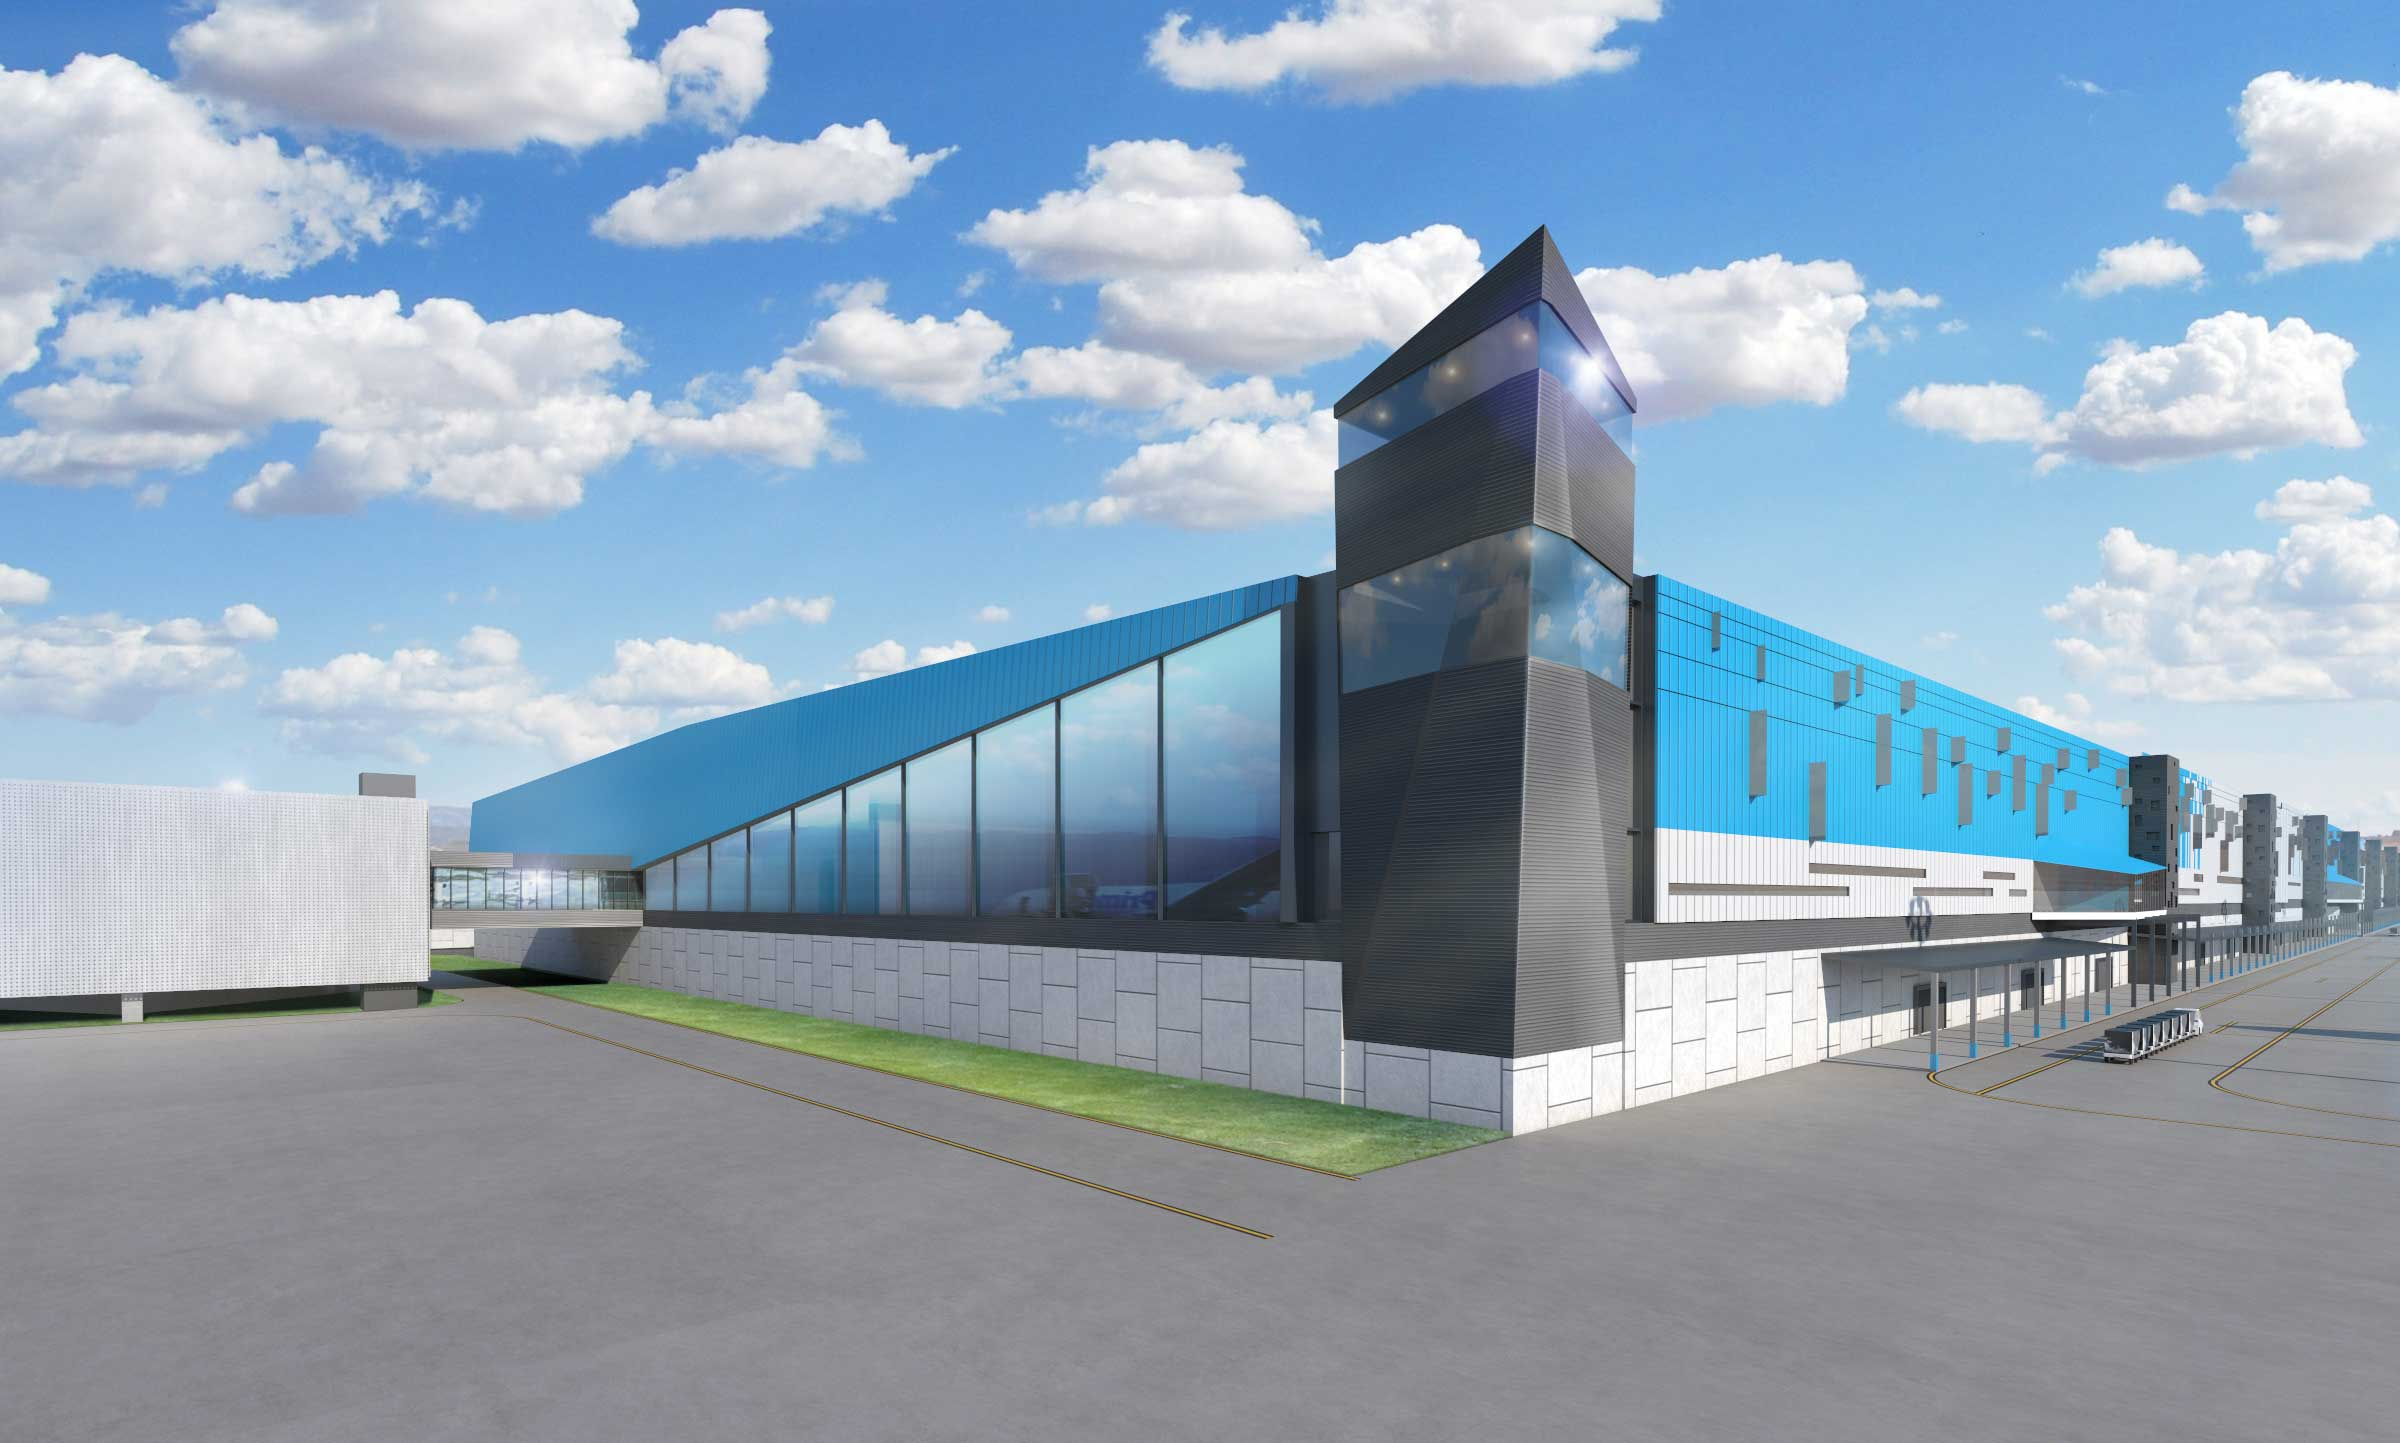 Impression of the Amazon Air Hub that will open in 2021 at Cincinnati-Northern Kentucky International Airport